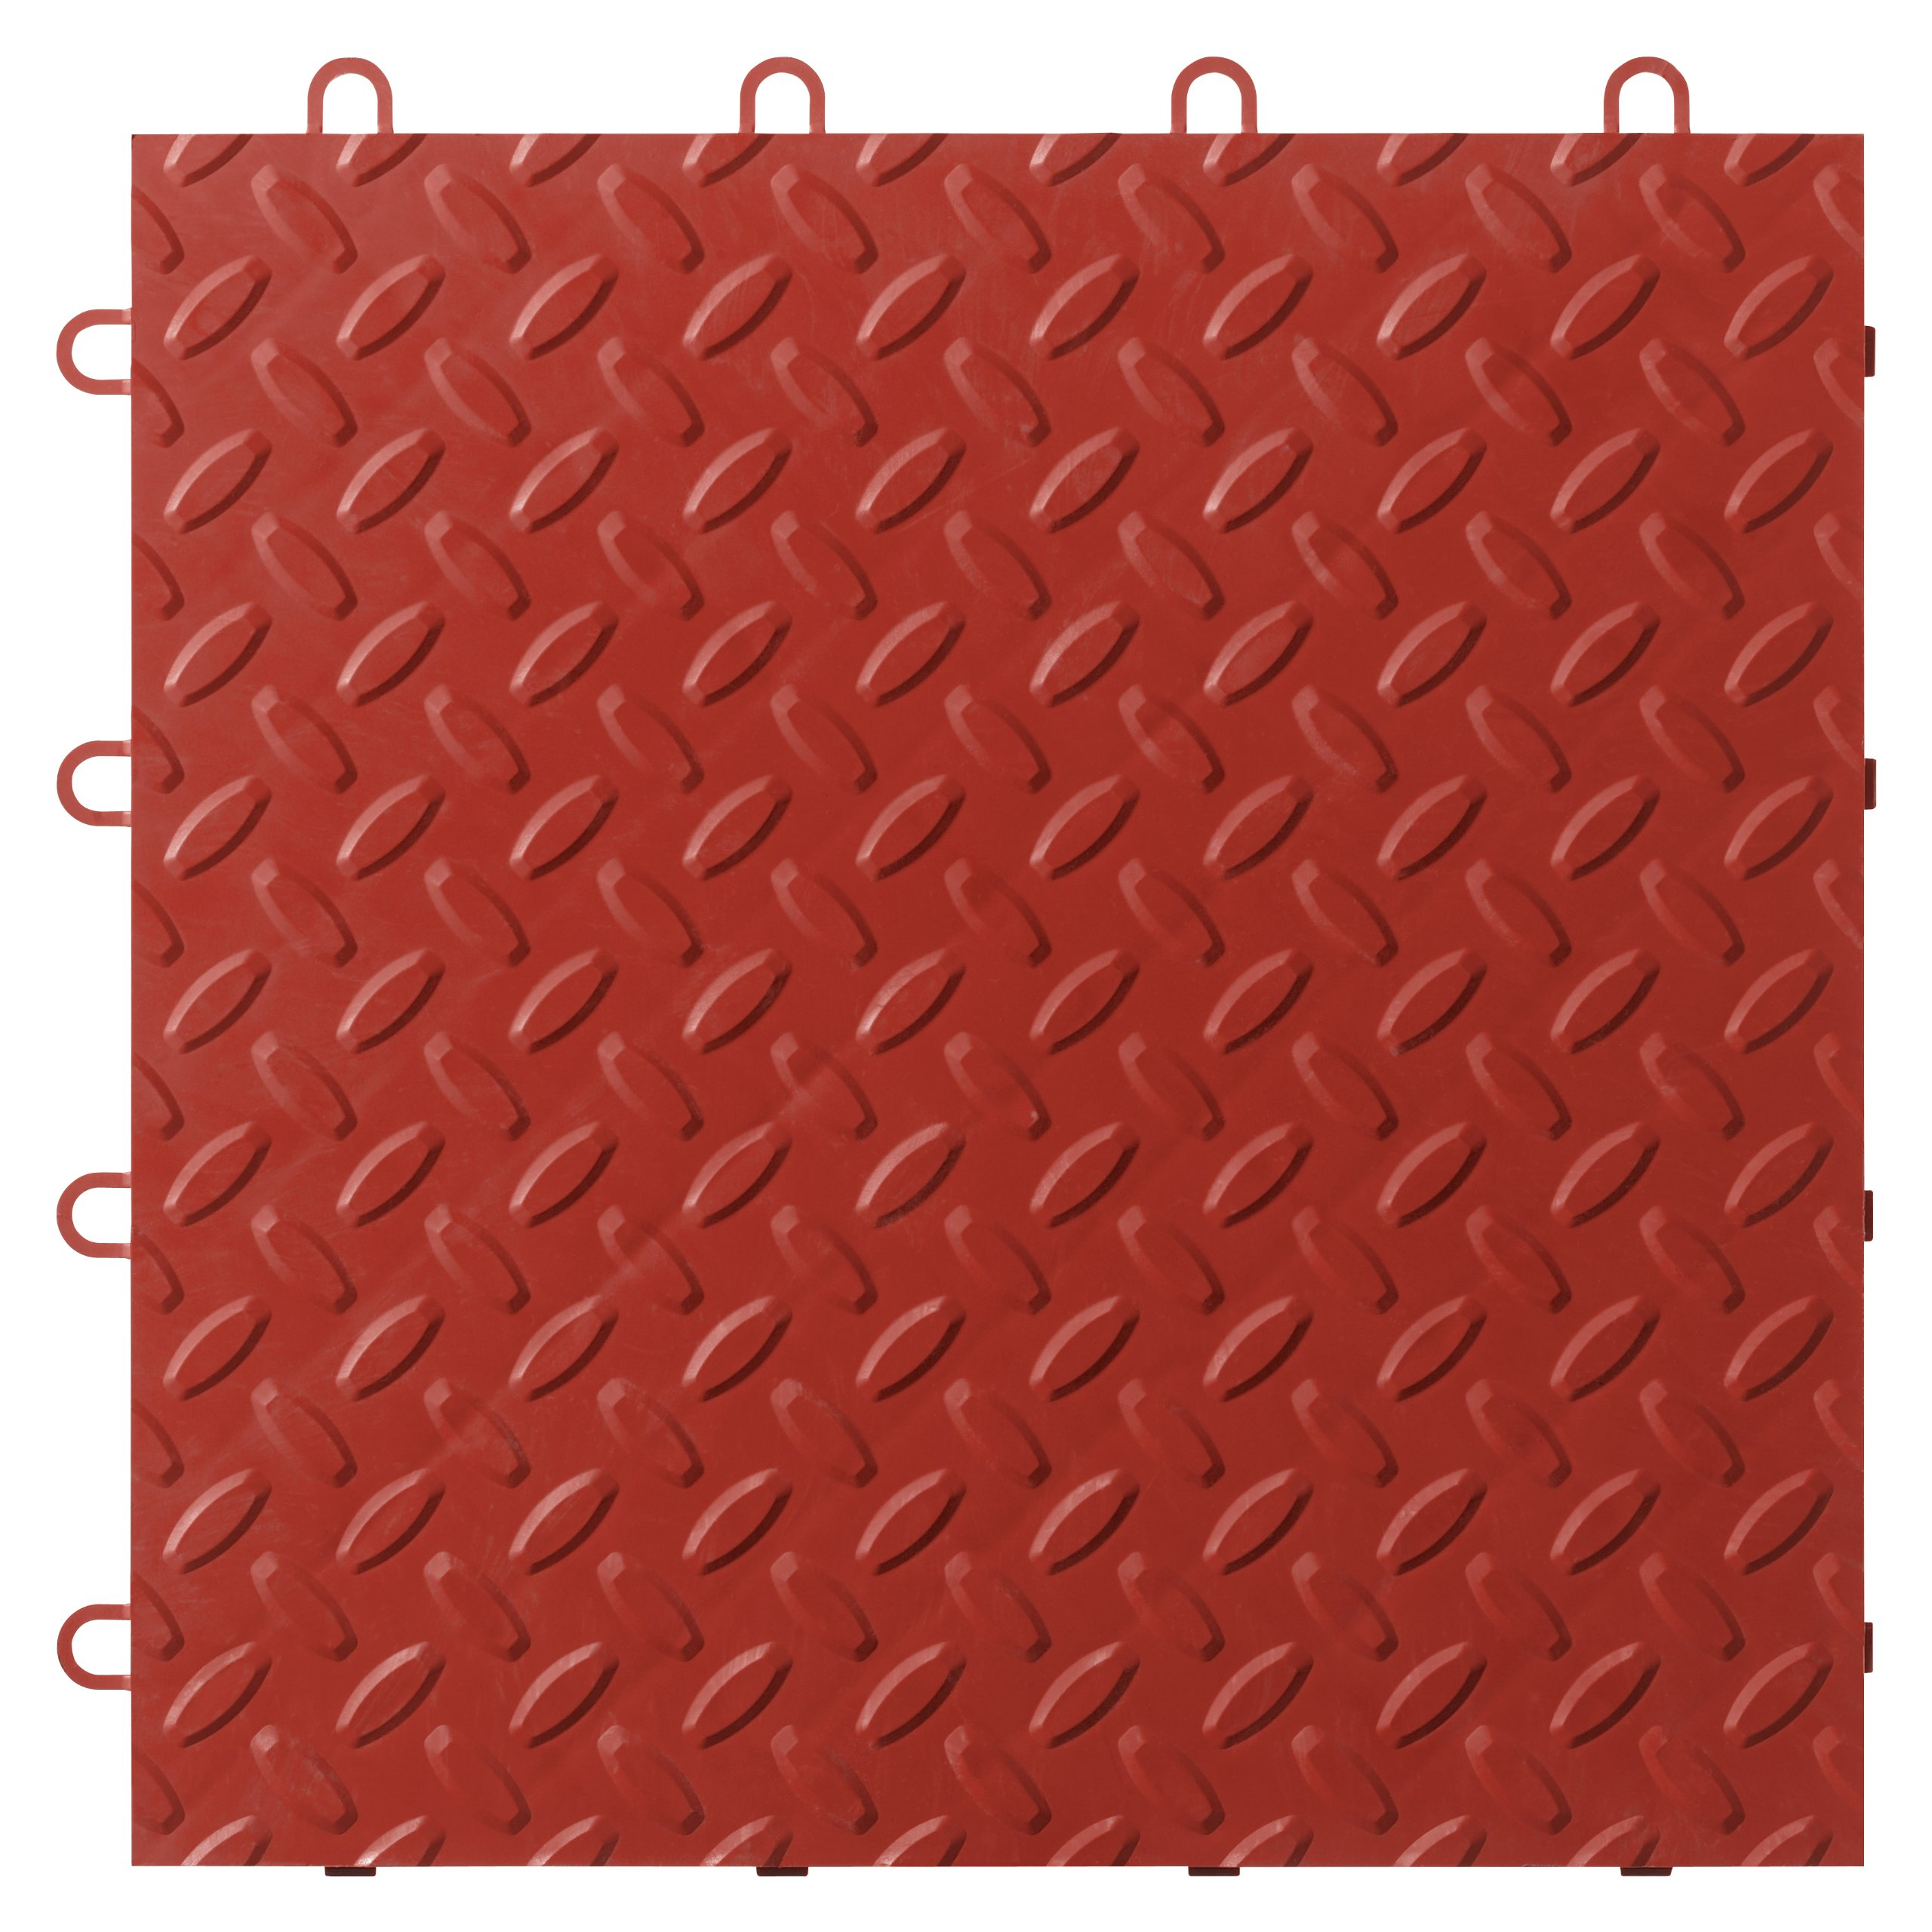 Gladiator GarageWorks GAFT48TTYR Red Floor Tile, 48-Pack by Gladiator